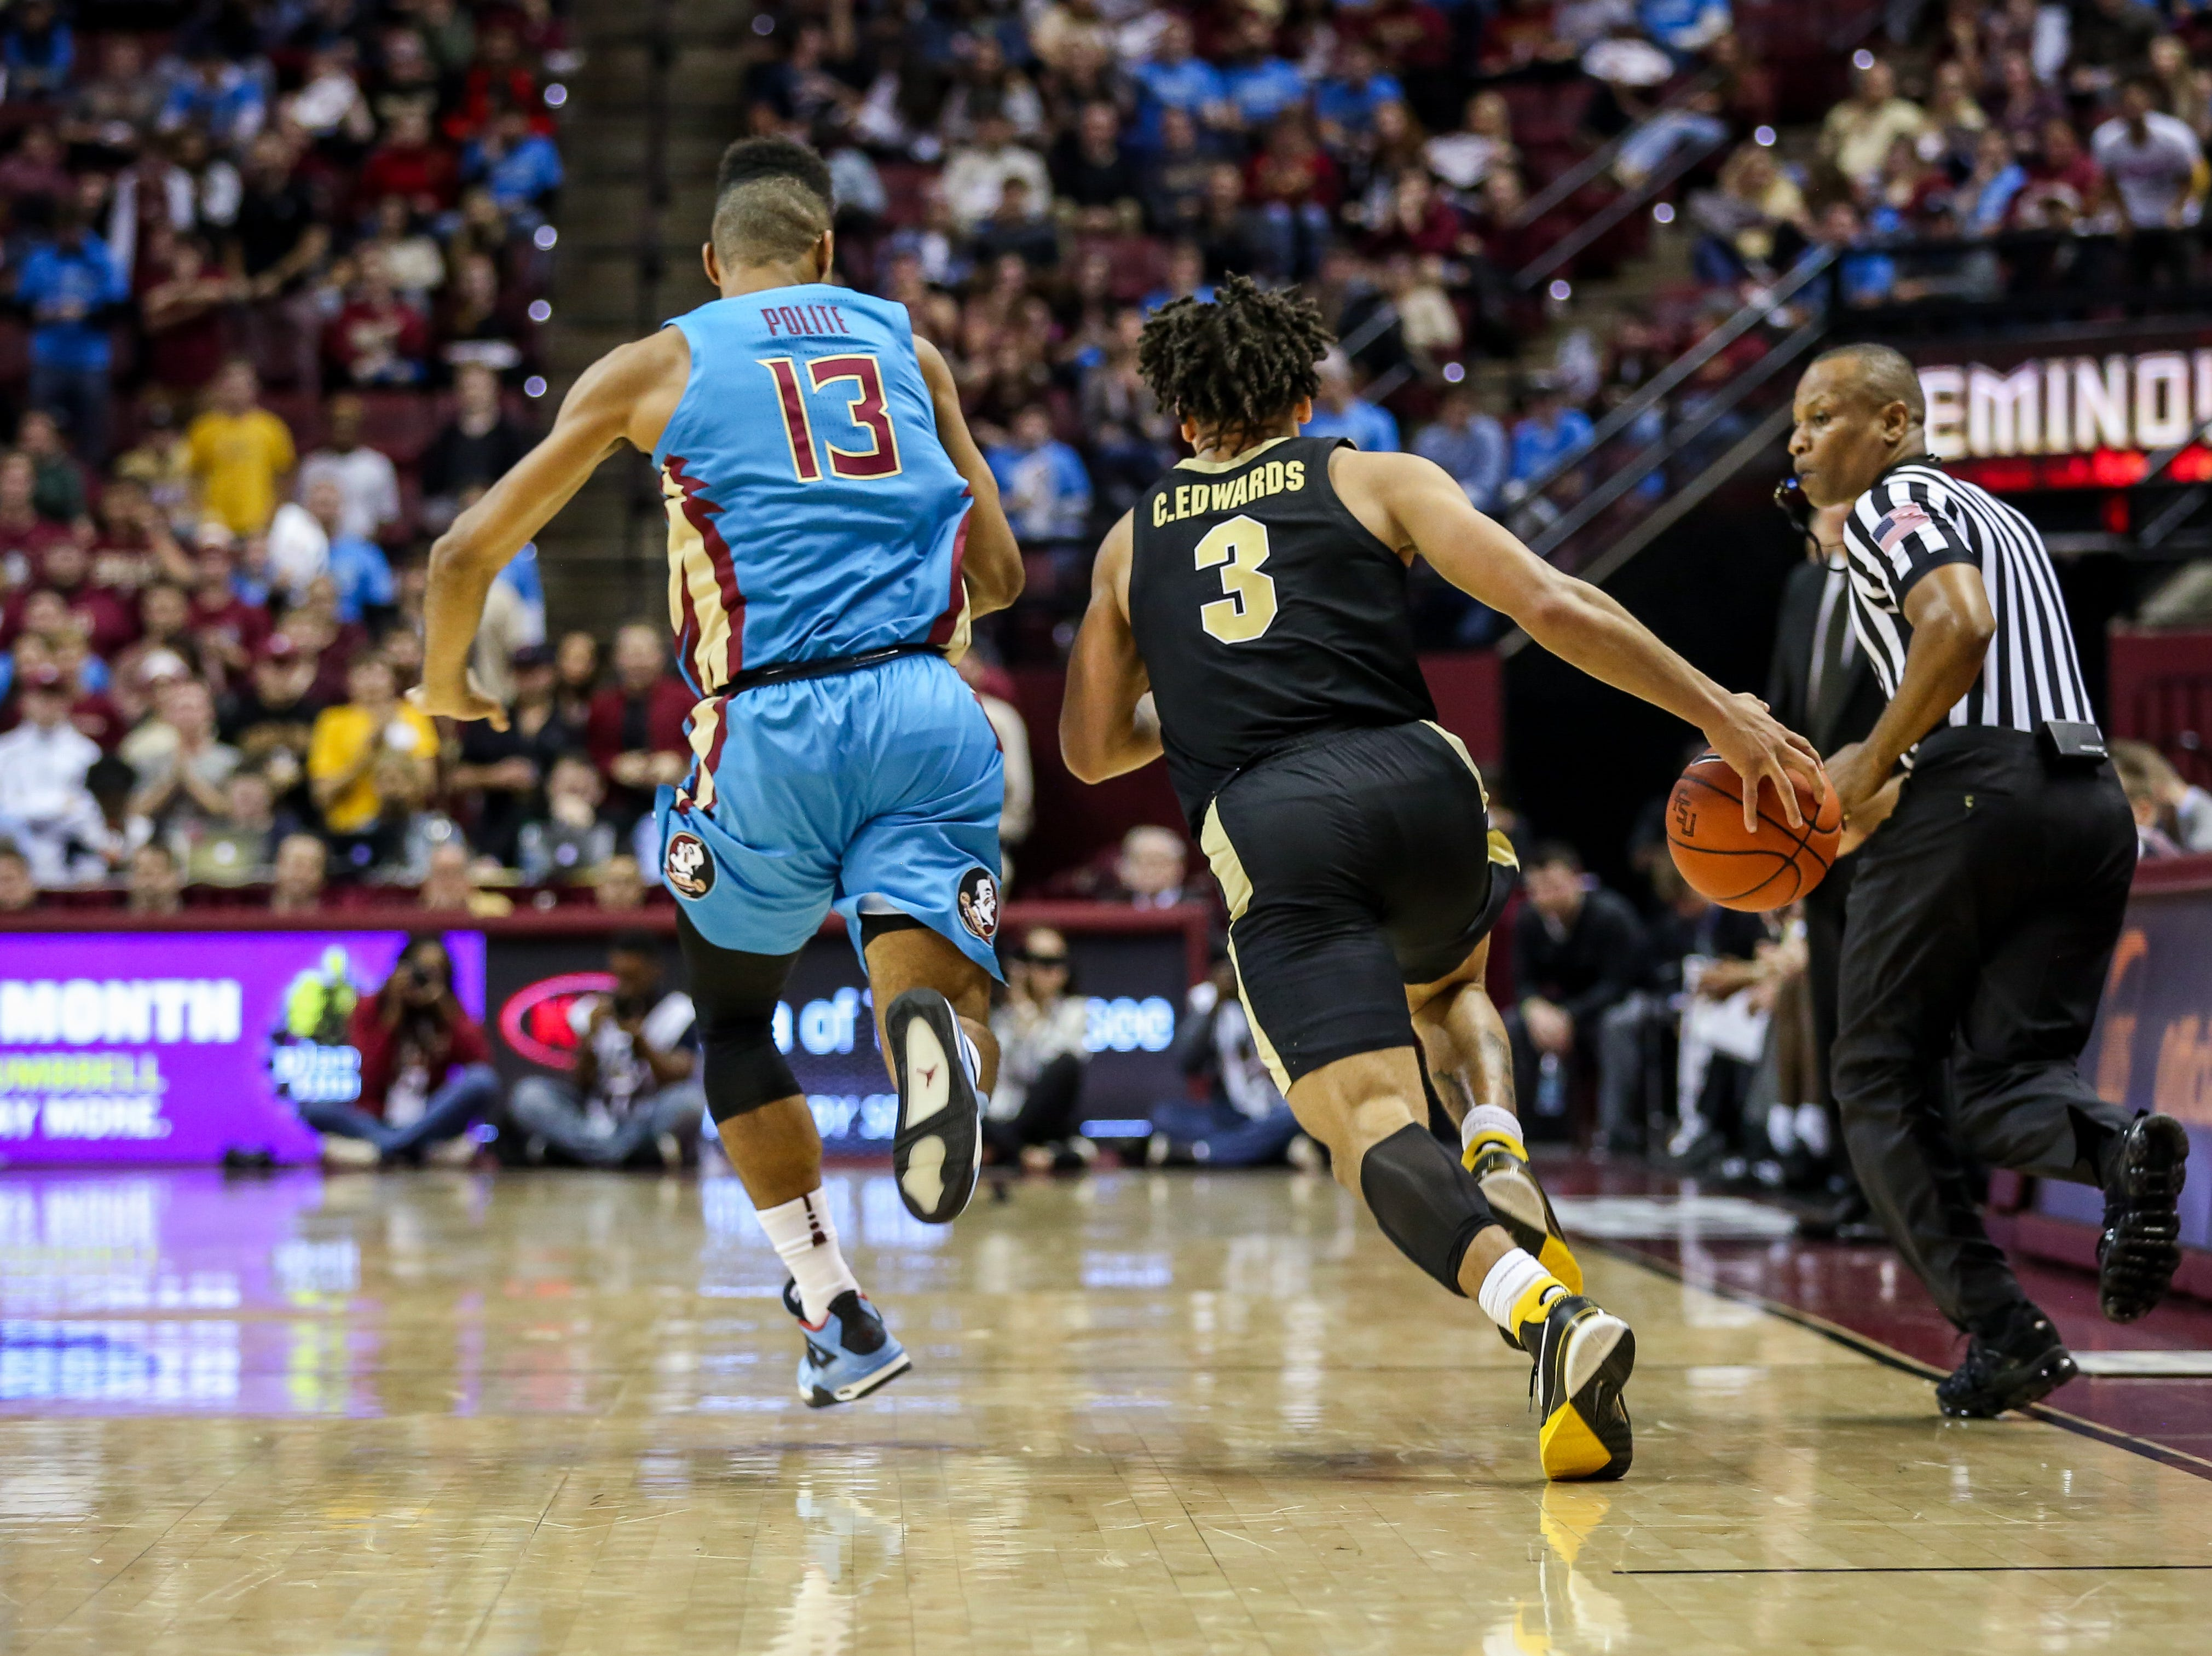 The Seminoles had a tough time controlling the speed and athleticism of Purdue's Guard Carsen Edwards (3) on Wednesday, November 28th.